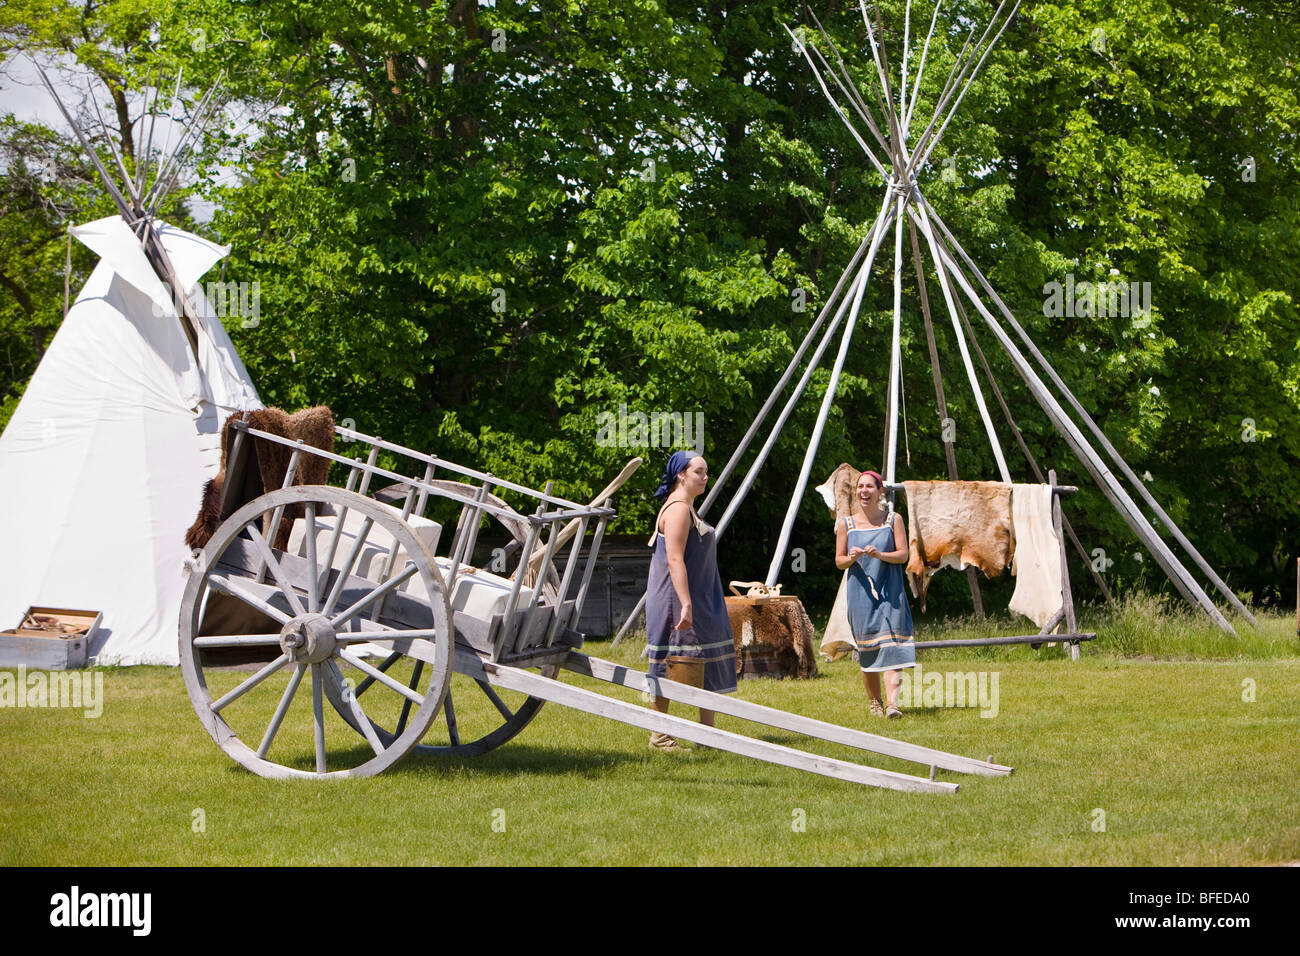 Reenactment at the Aboriginal Encampment of Lower Fort Garry, a National Historic Site, Selkirk, Manitoba, Canada - Stock Image